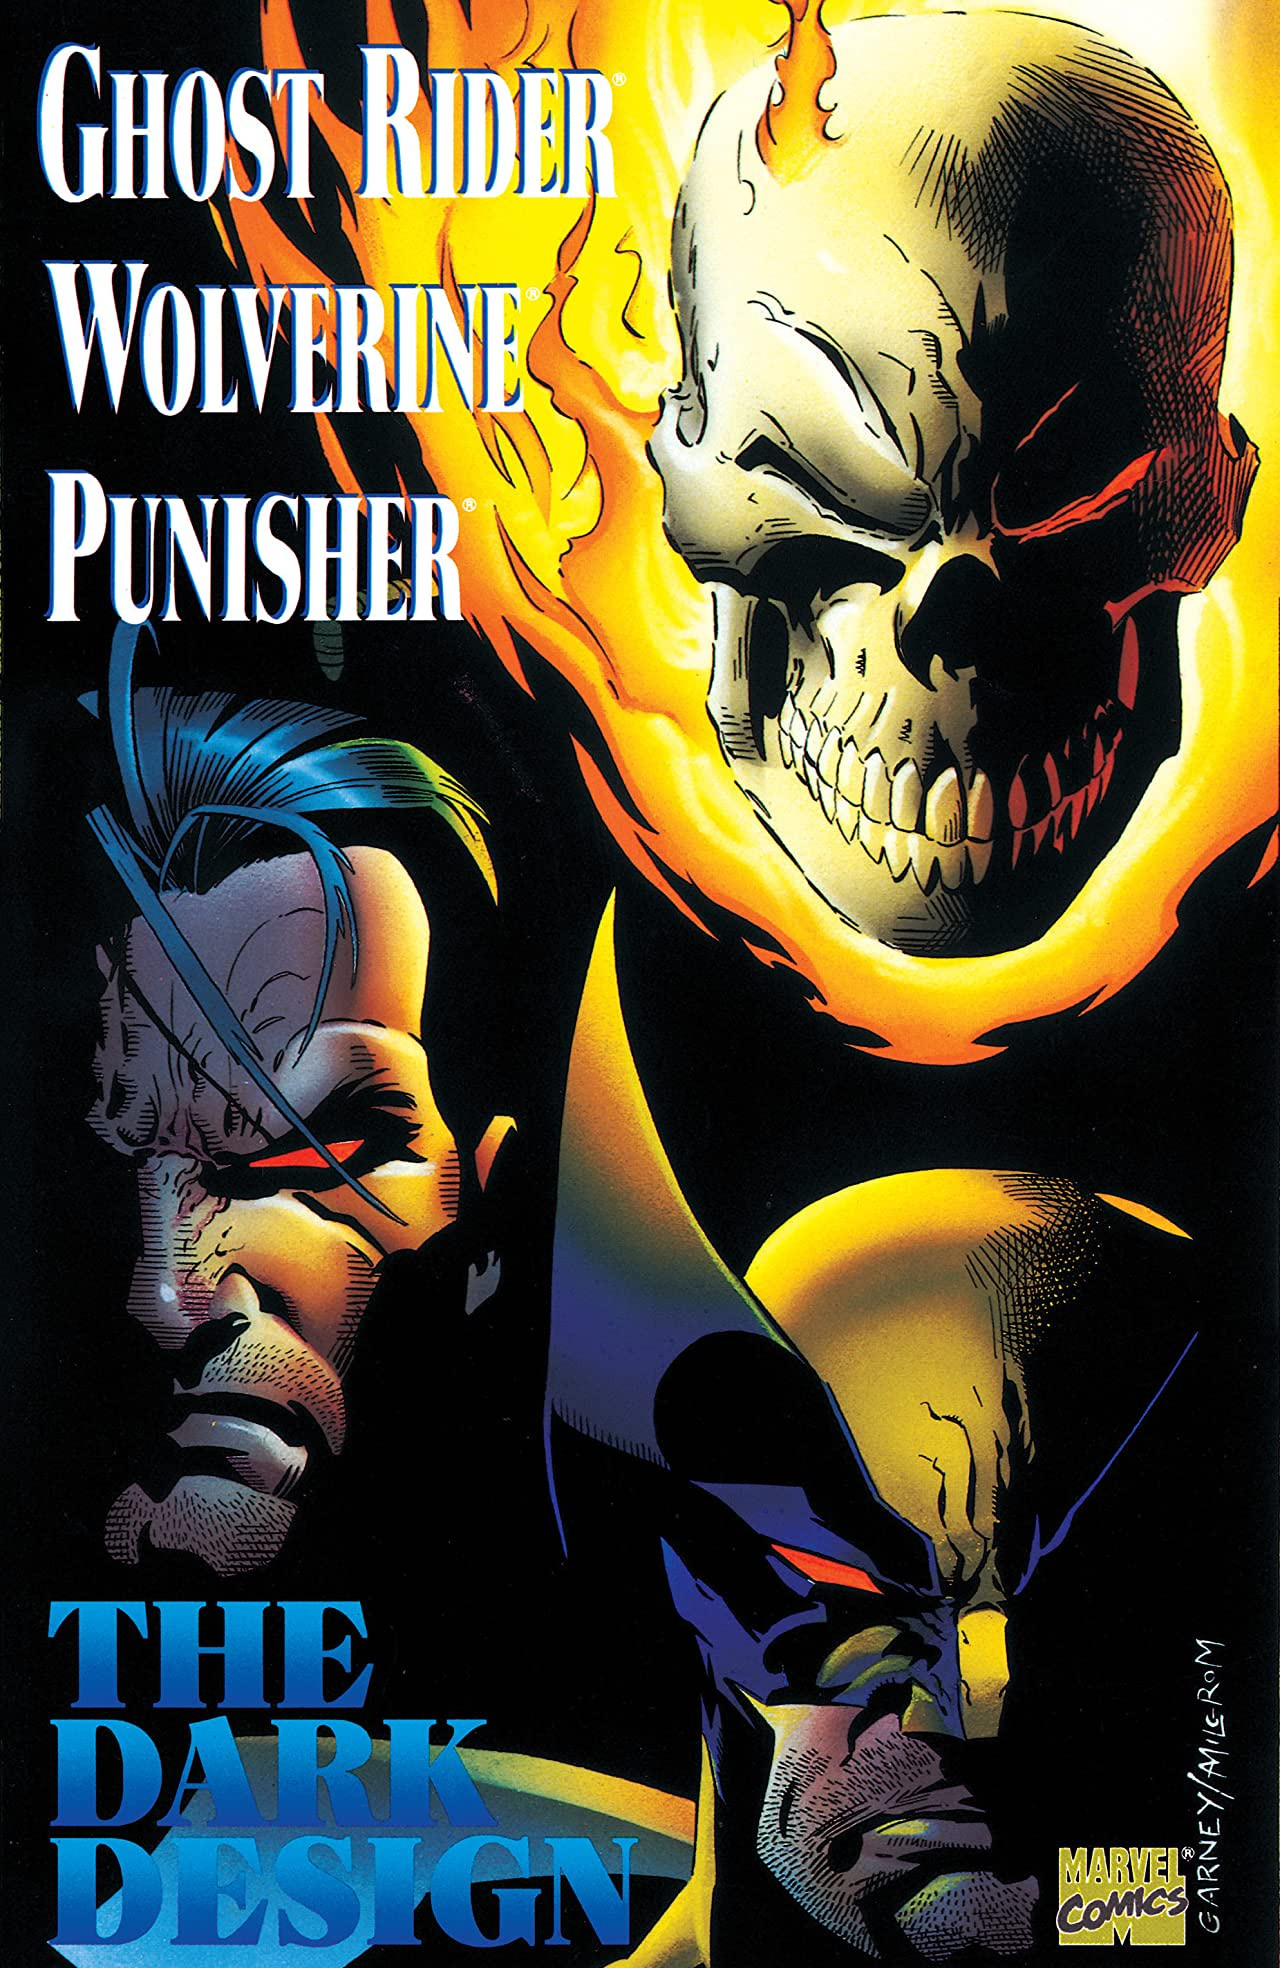 Ghost Rider/Wolverine/Punisher: The Dark Design Vol 1